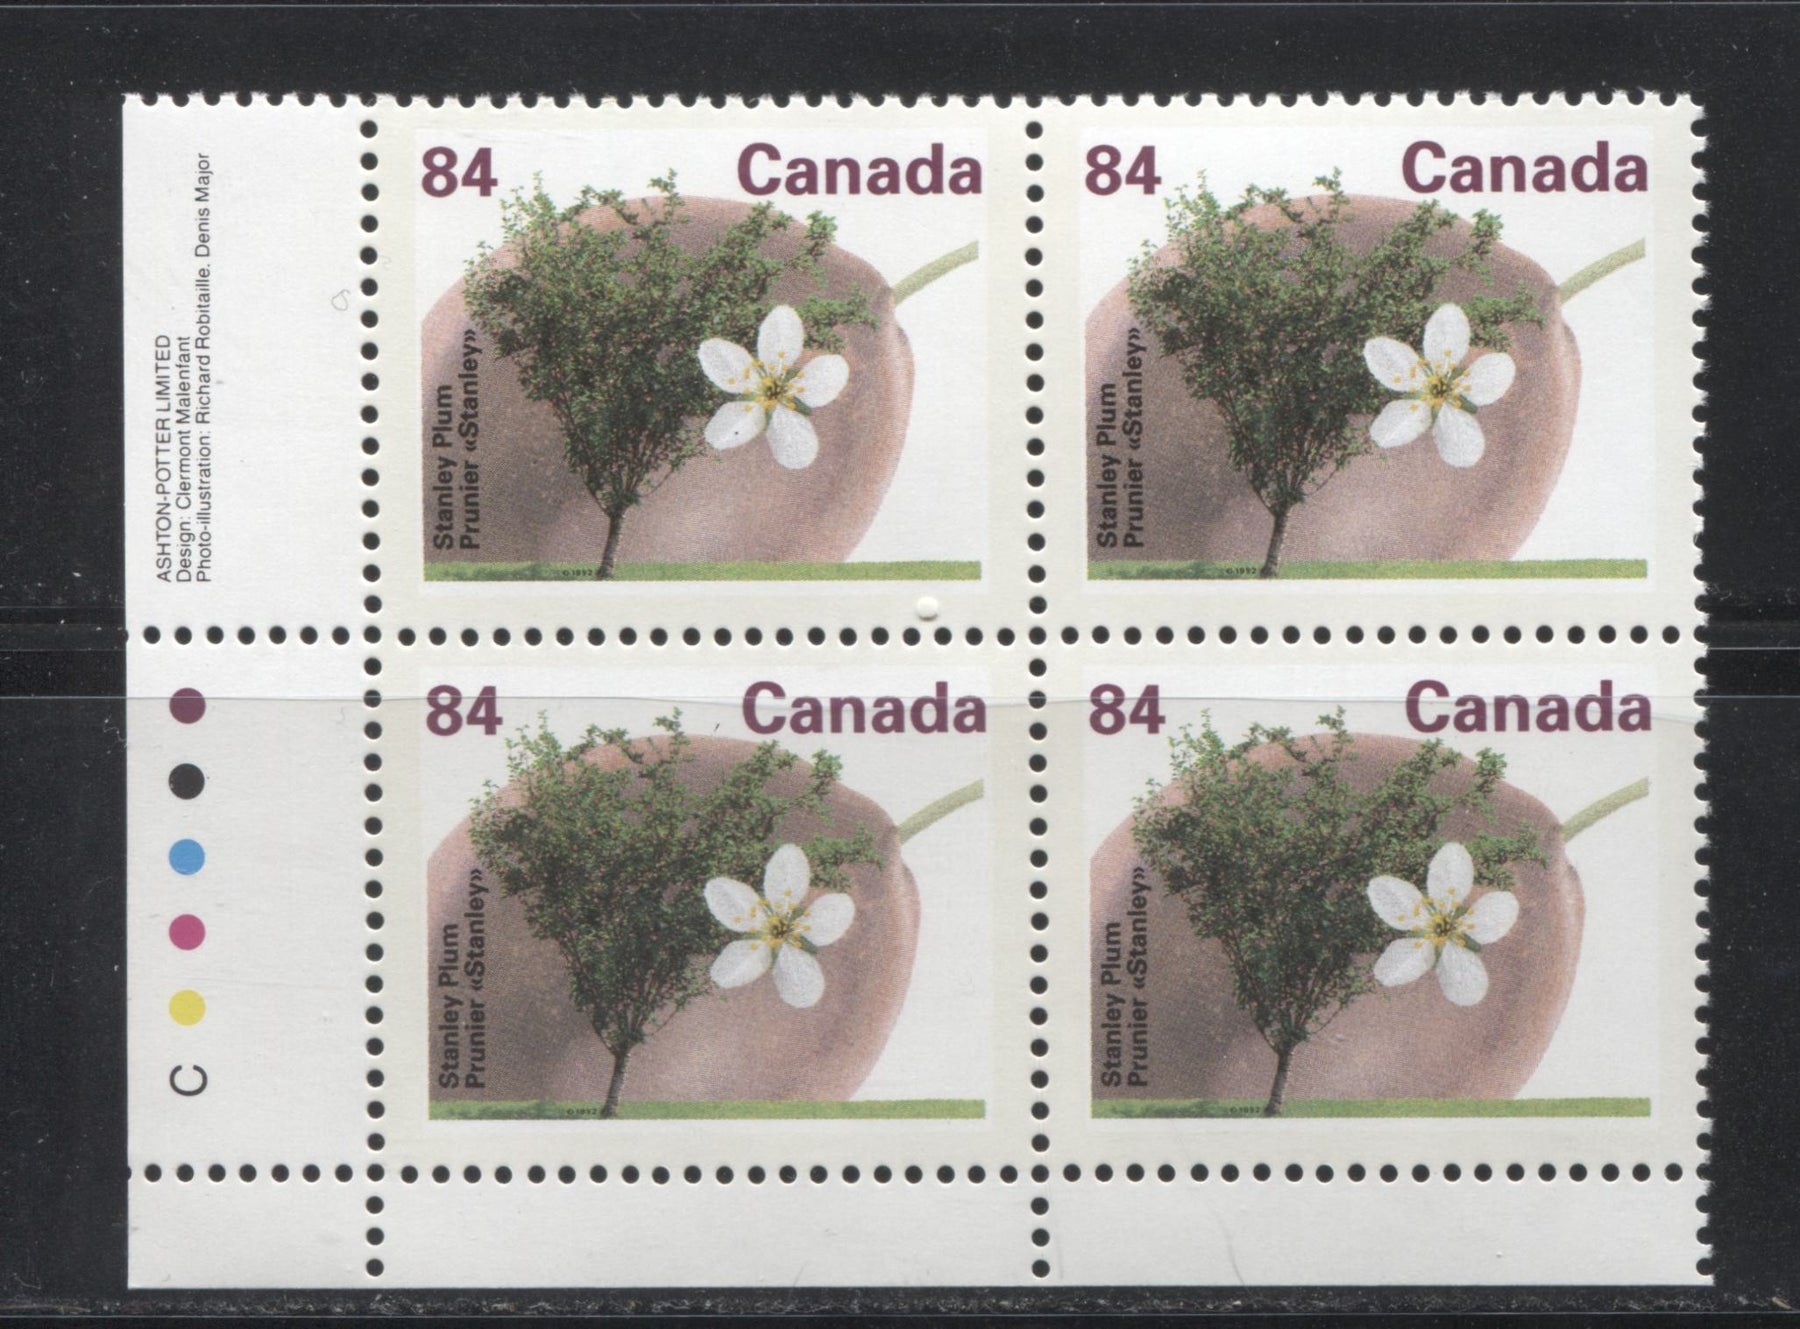 Canada #1371 84c Stanley Plum, 1991-1998 Fruit & Flag Definitive Issue, A VFNH LL Inscription Block, Perf. 13.1 on Dead/DF Coated Papers Paper